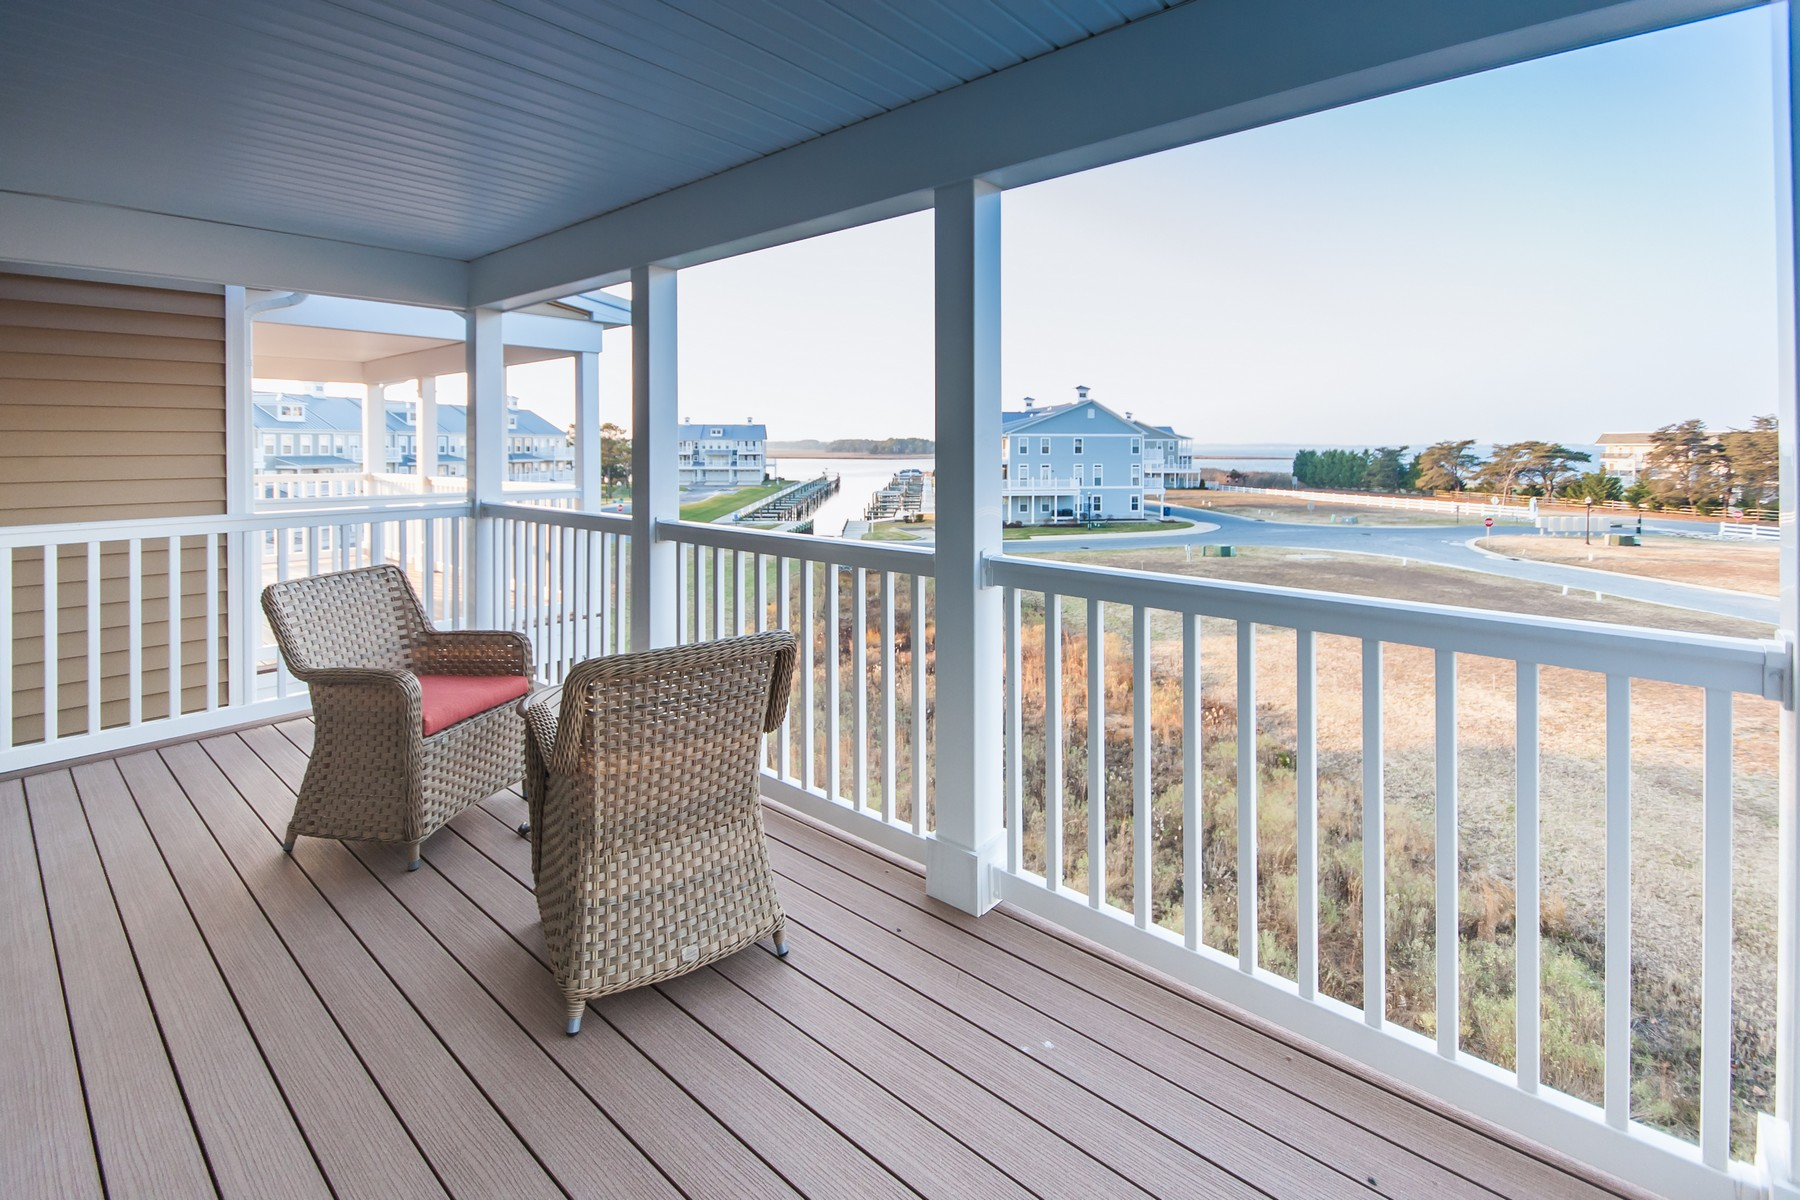 Additional photo for property listing at 37688 Sandy Trap Drive , 906, Ocean View, DE 19970 37688  Sandy Trap Drive 906 Ocean View, Delaware 19970 United States